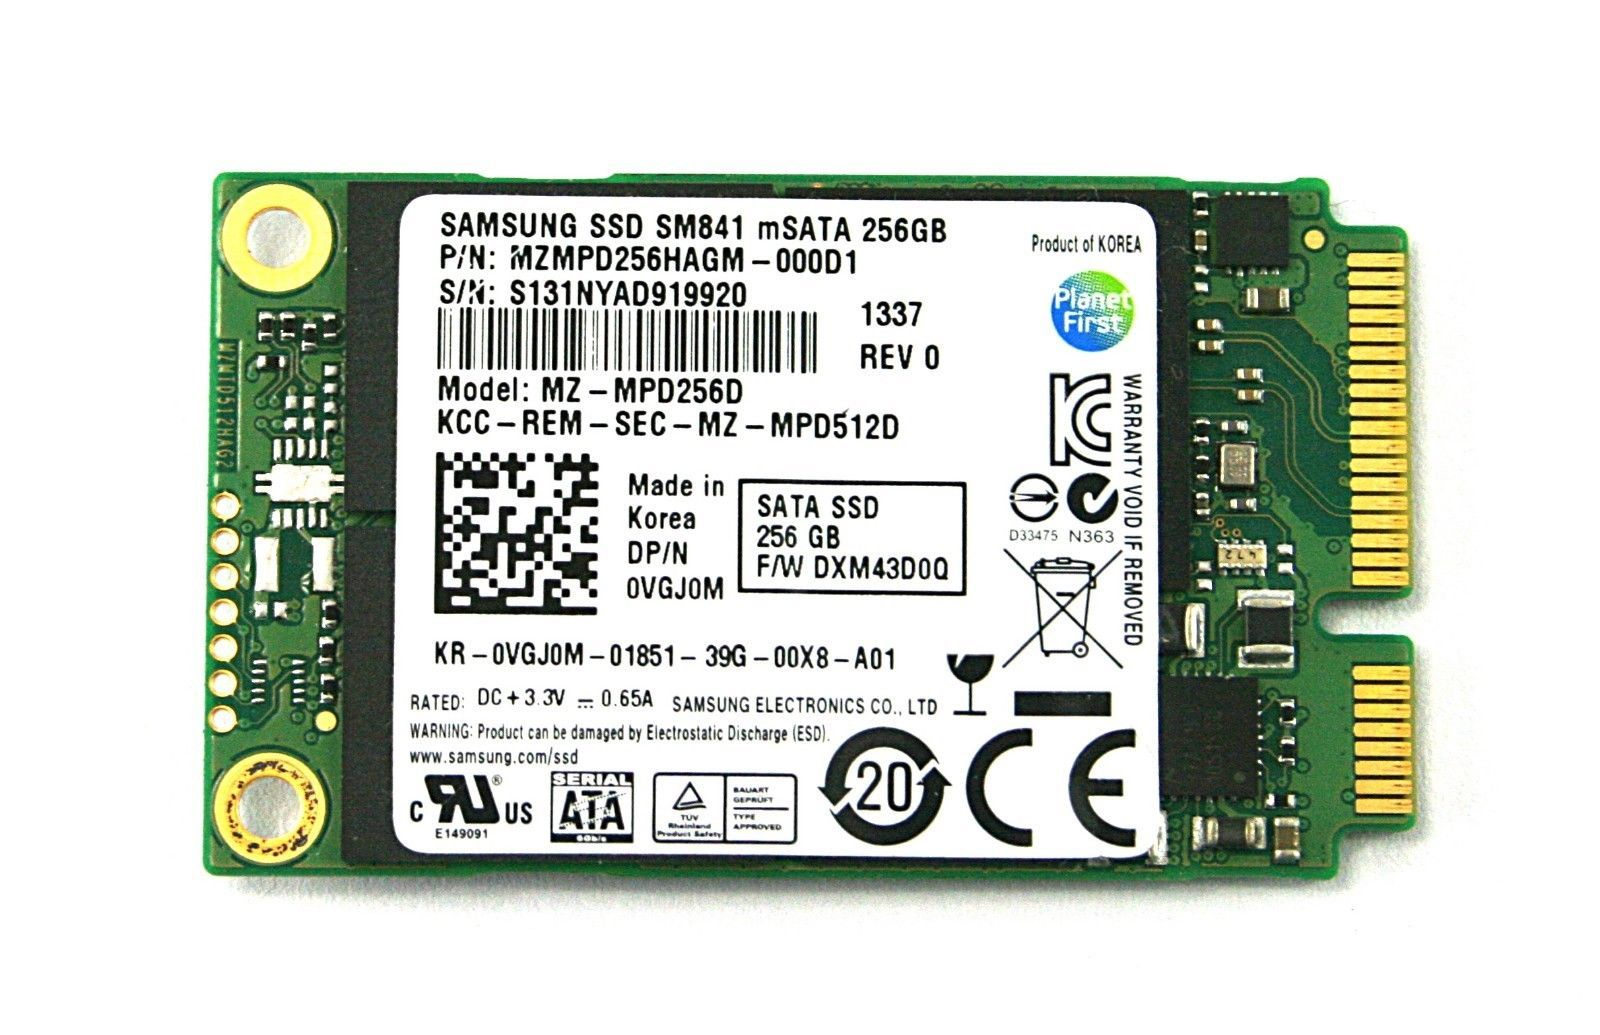 Primary image for Samsung 256GB SSD  MZMPD256HAGM-000D1